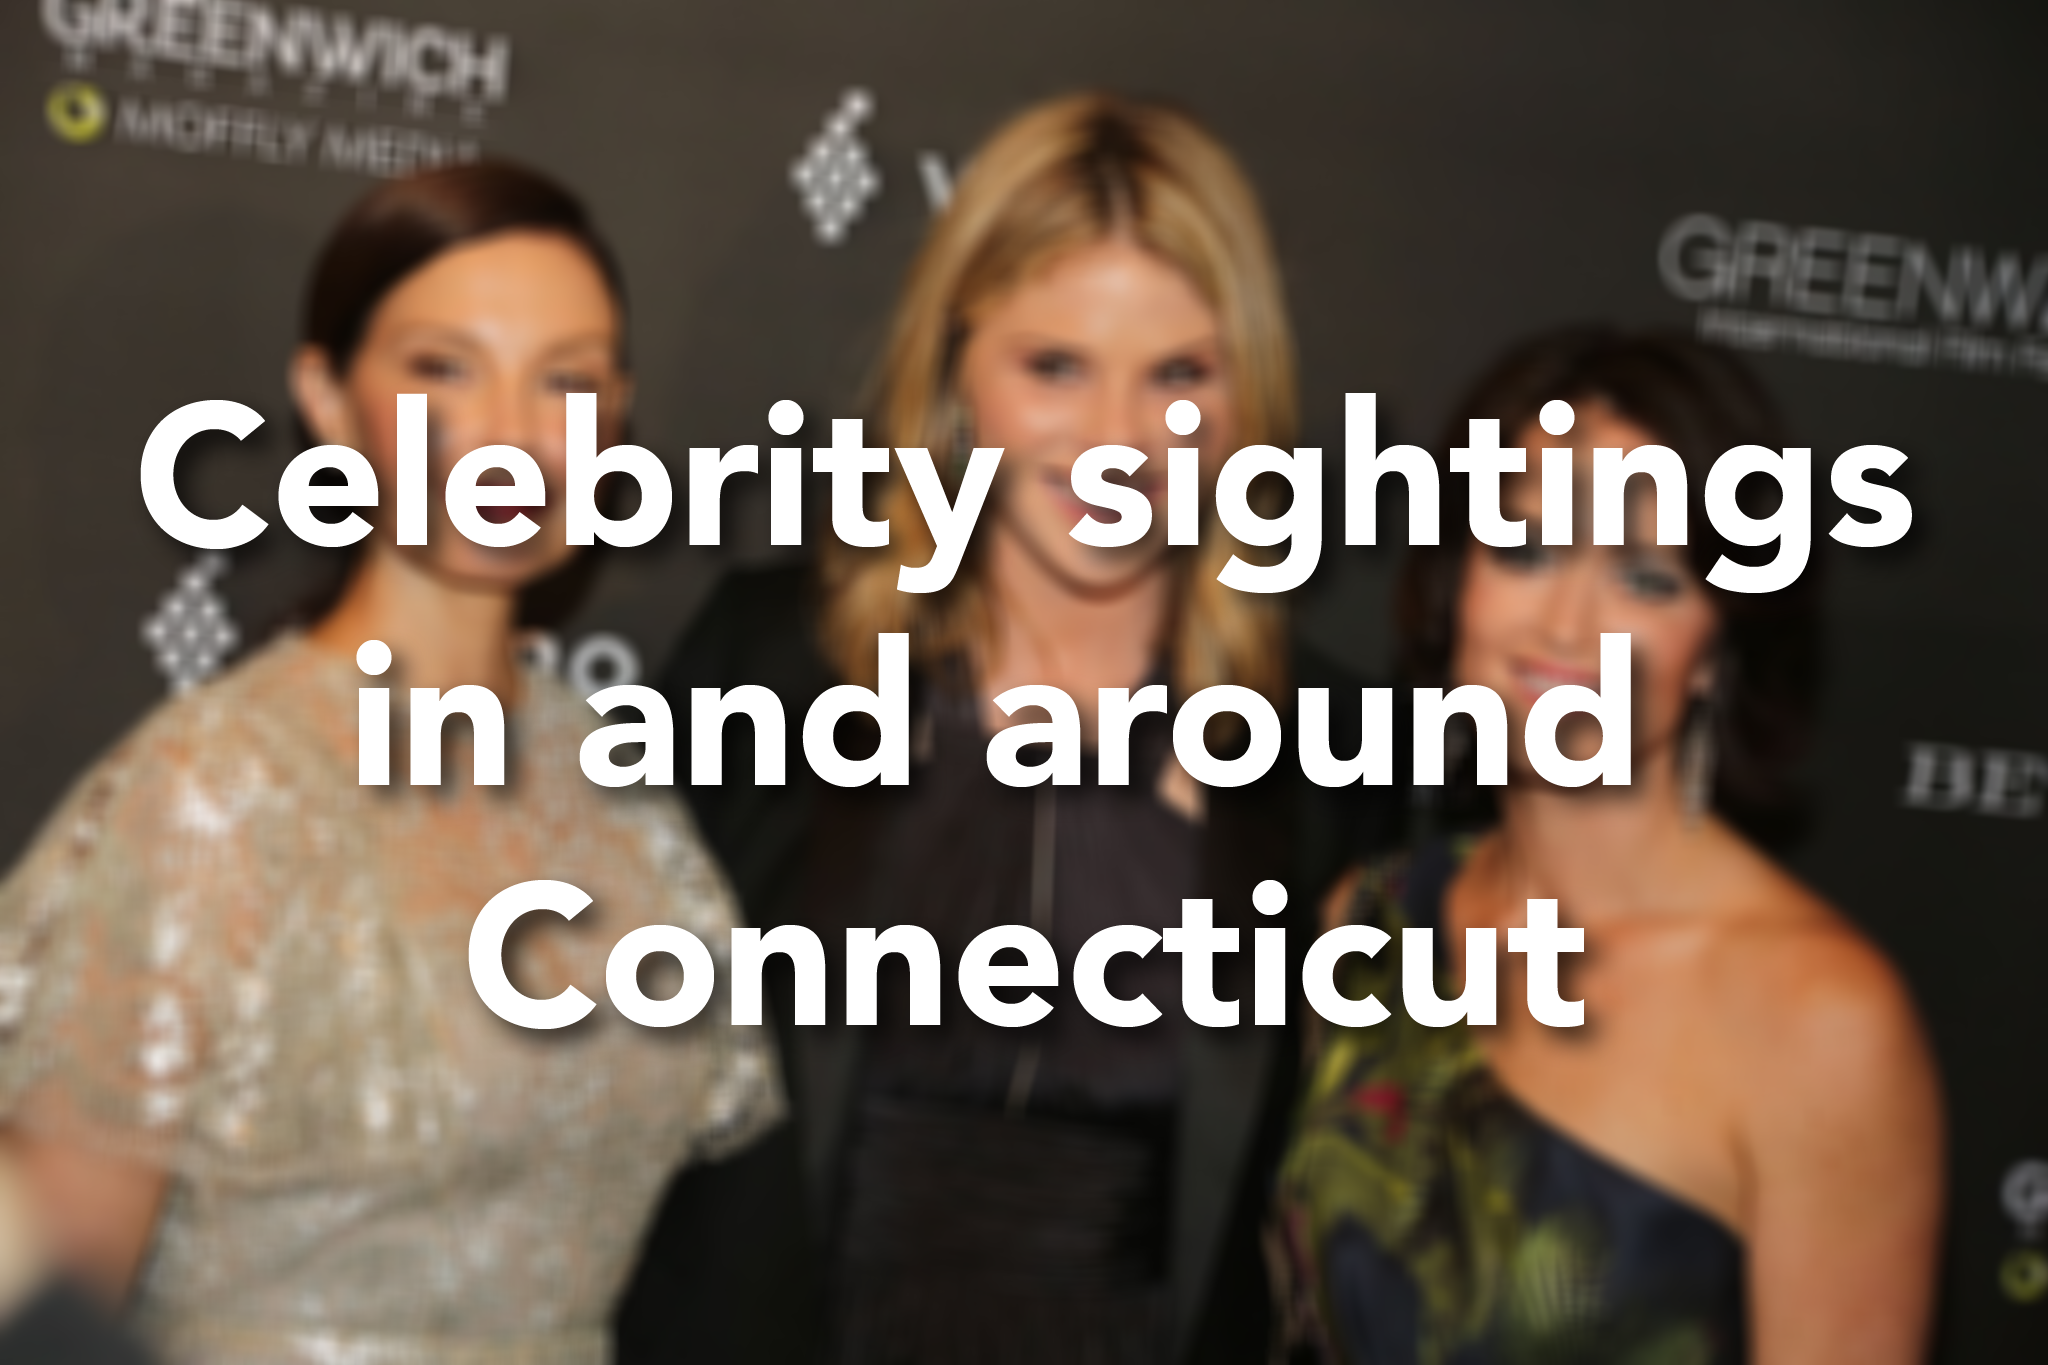 recent celebrity spottings around southwestern connecticut - the hour